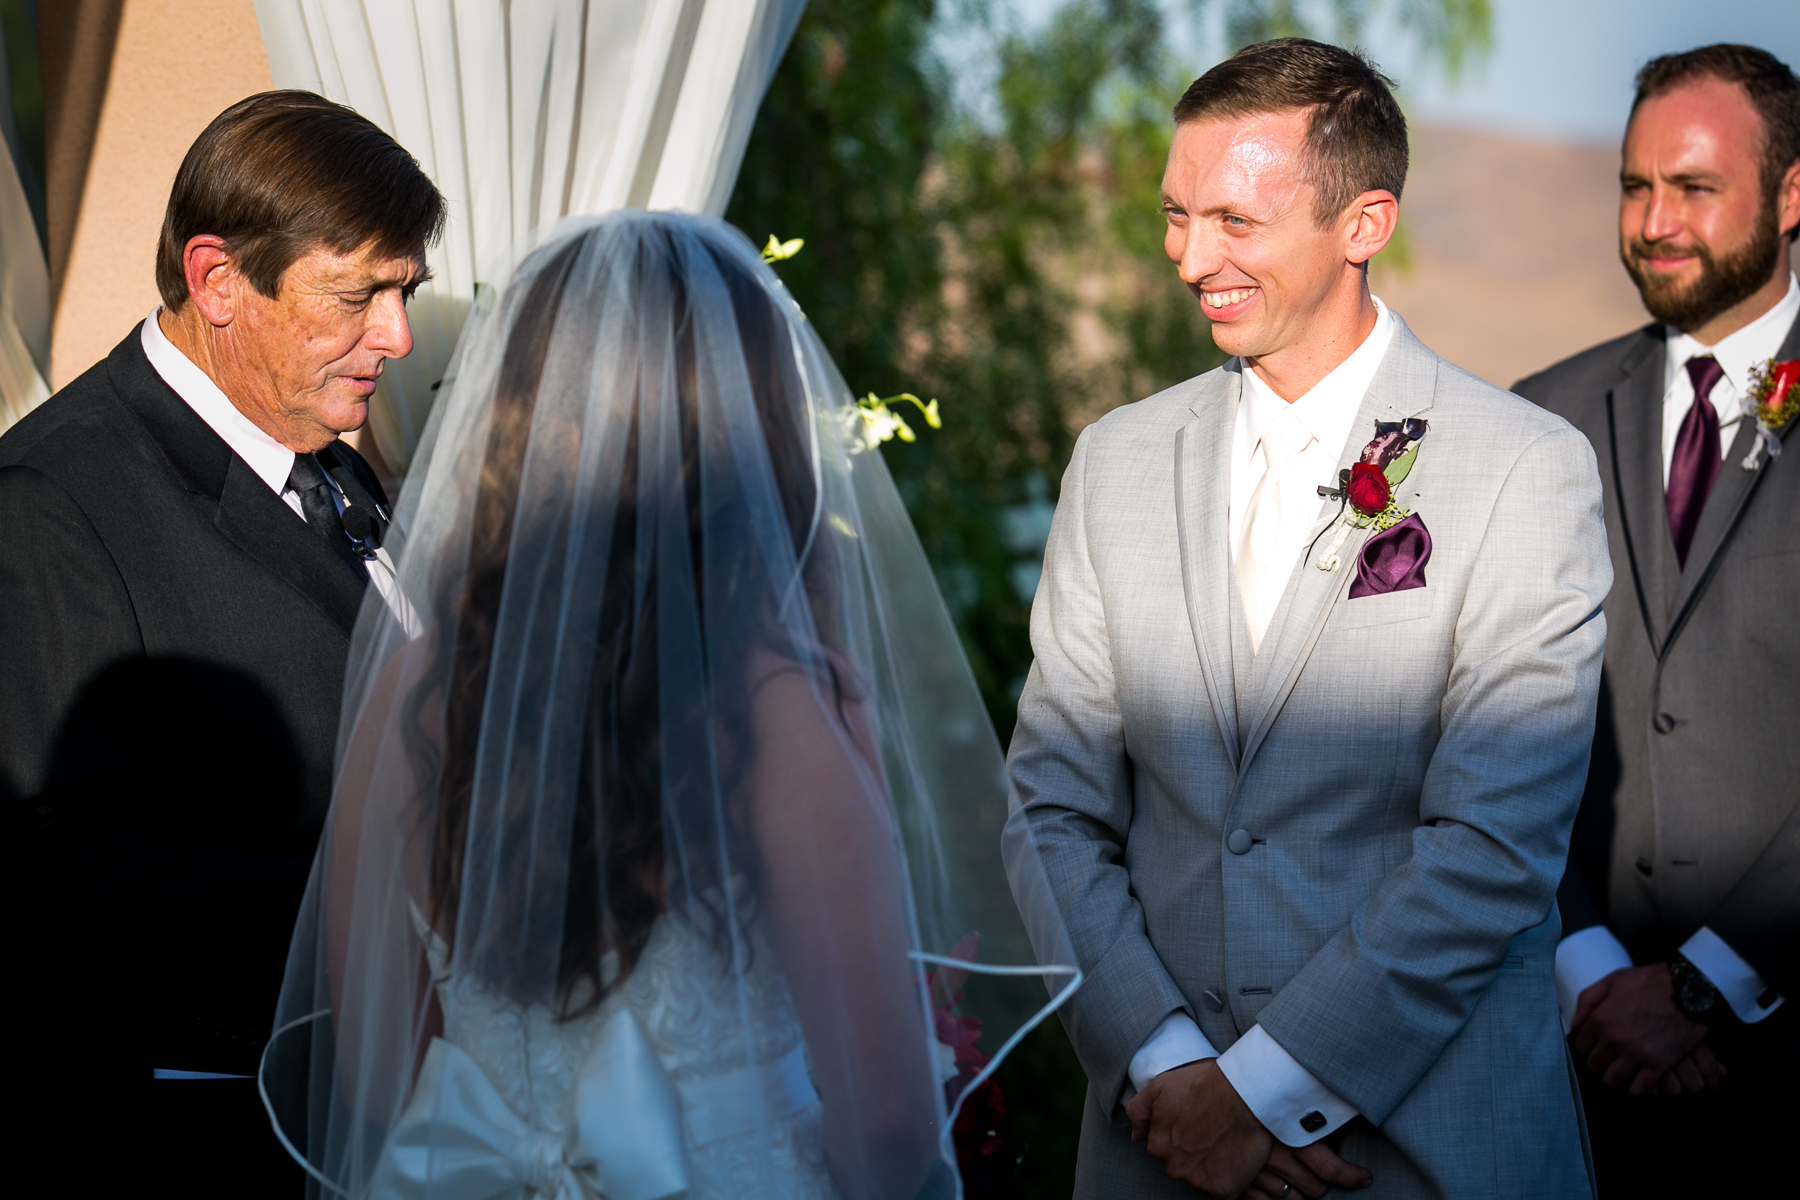 groom can't stop smiling at bride during ceremony at corona wedding photos